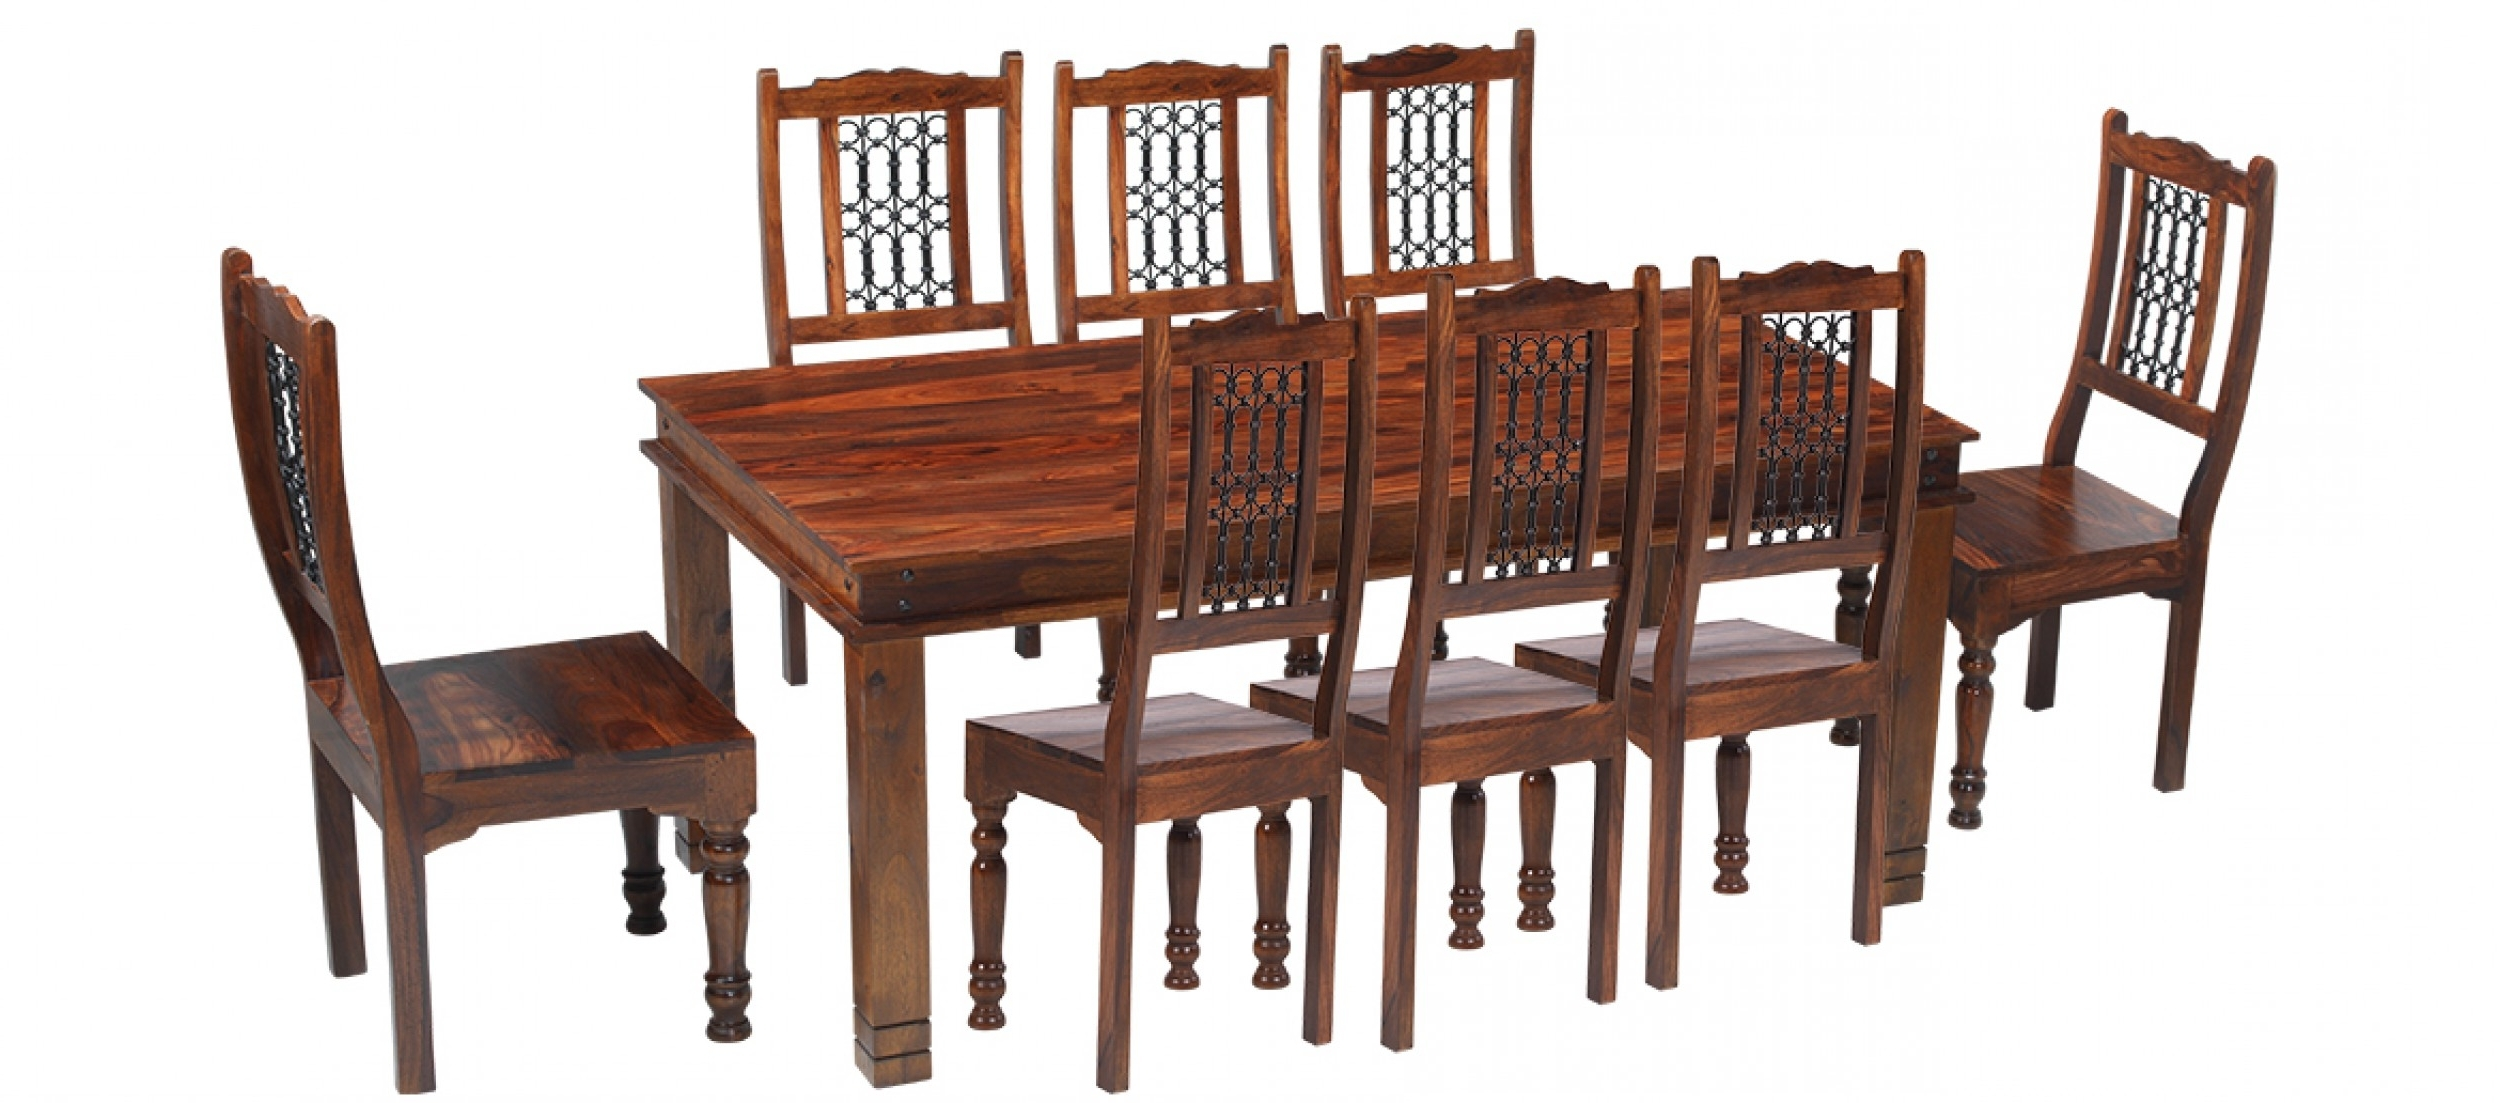 Jali Sheesham 200 Cm Chunky Dining Table And 8 Chairs Quercus Living Intended For Favorite Dining Tables With 8 Chairs (Gallery 19 of 25)